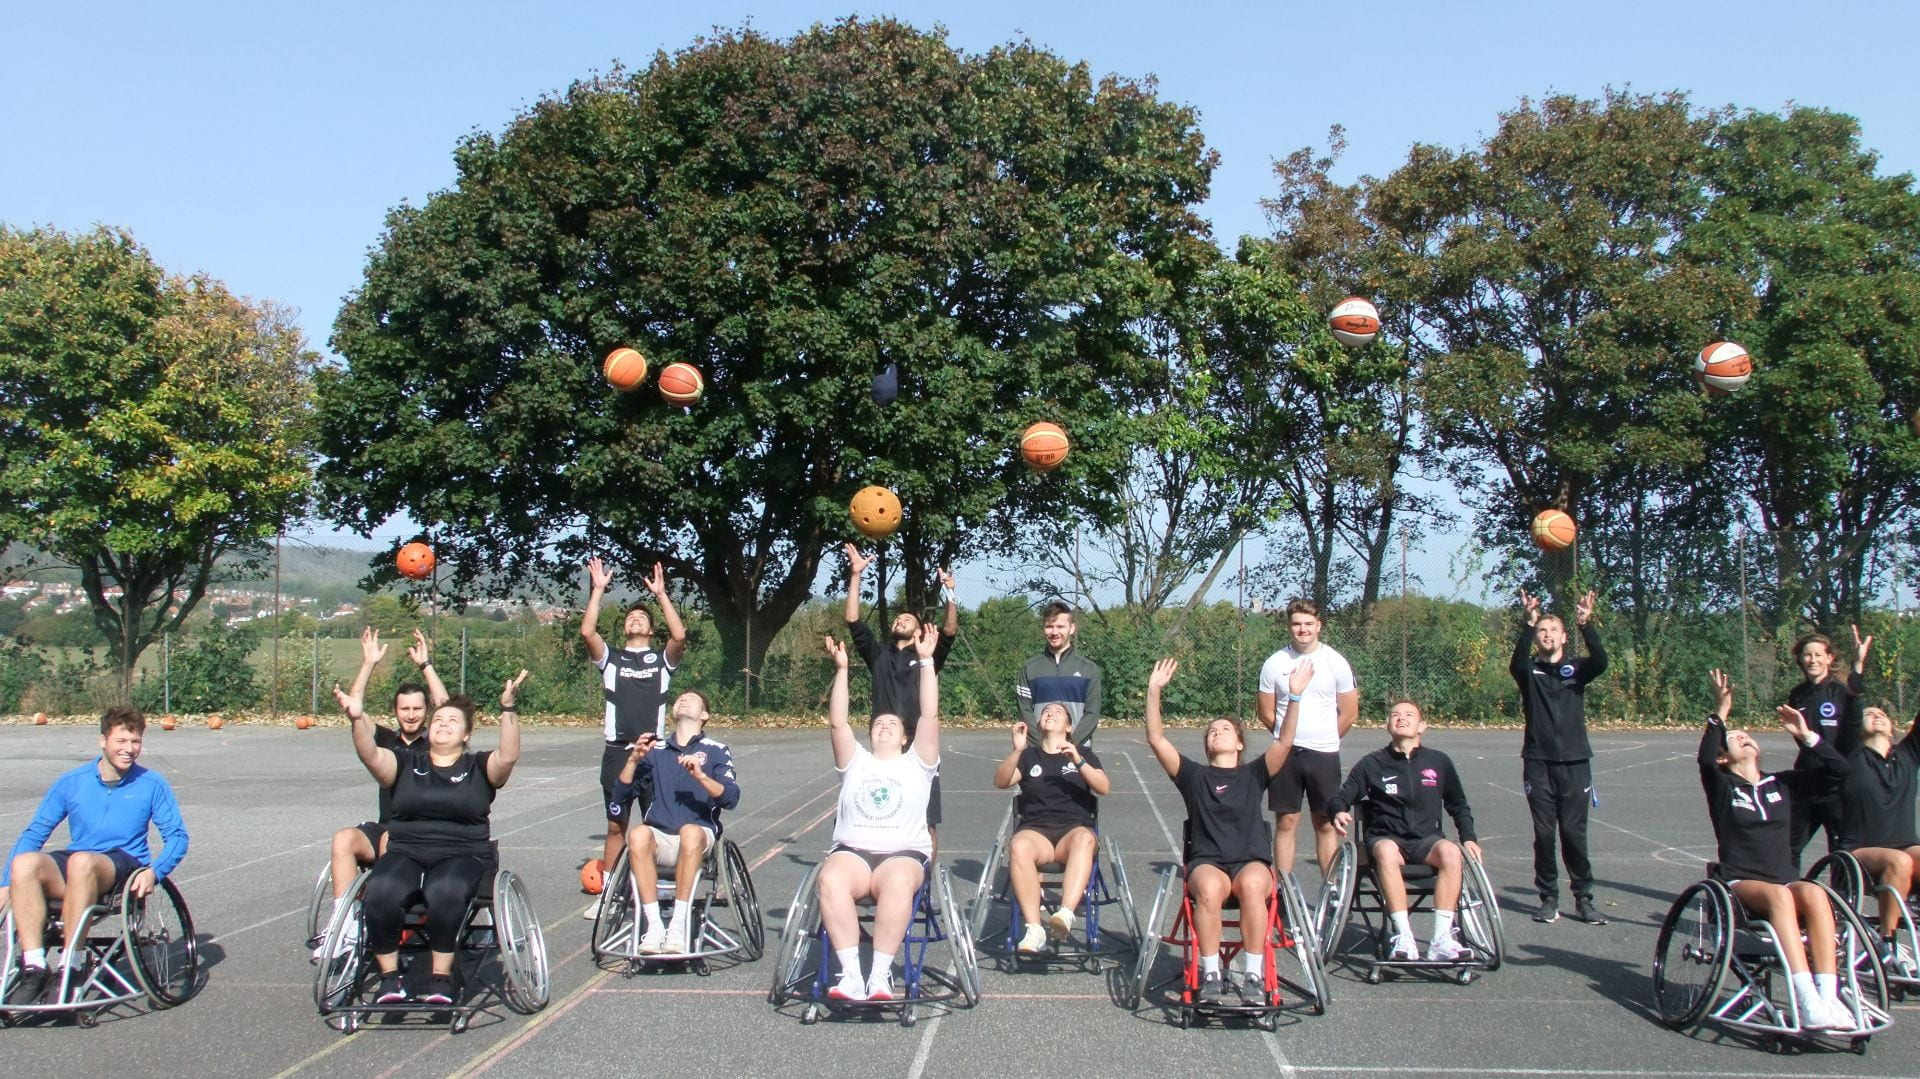 Students in wheelchairs throwing balls in the air